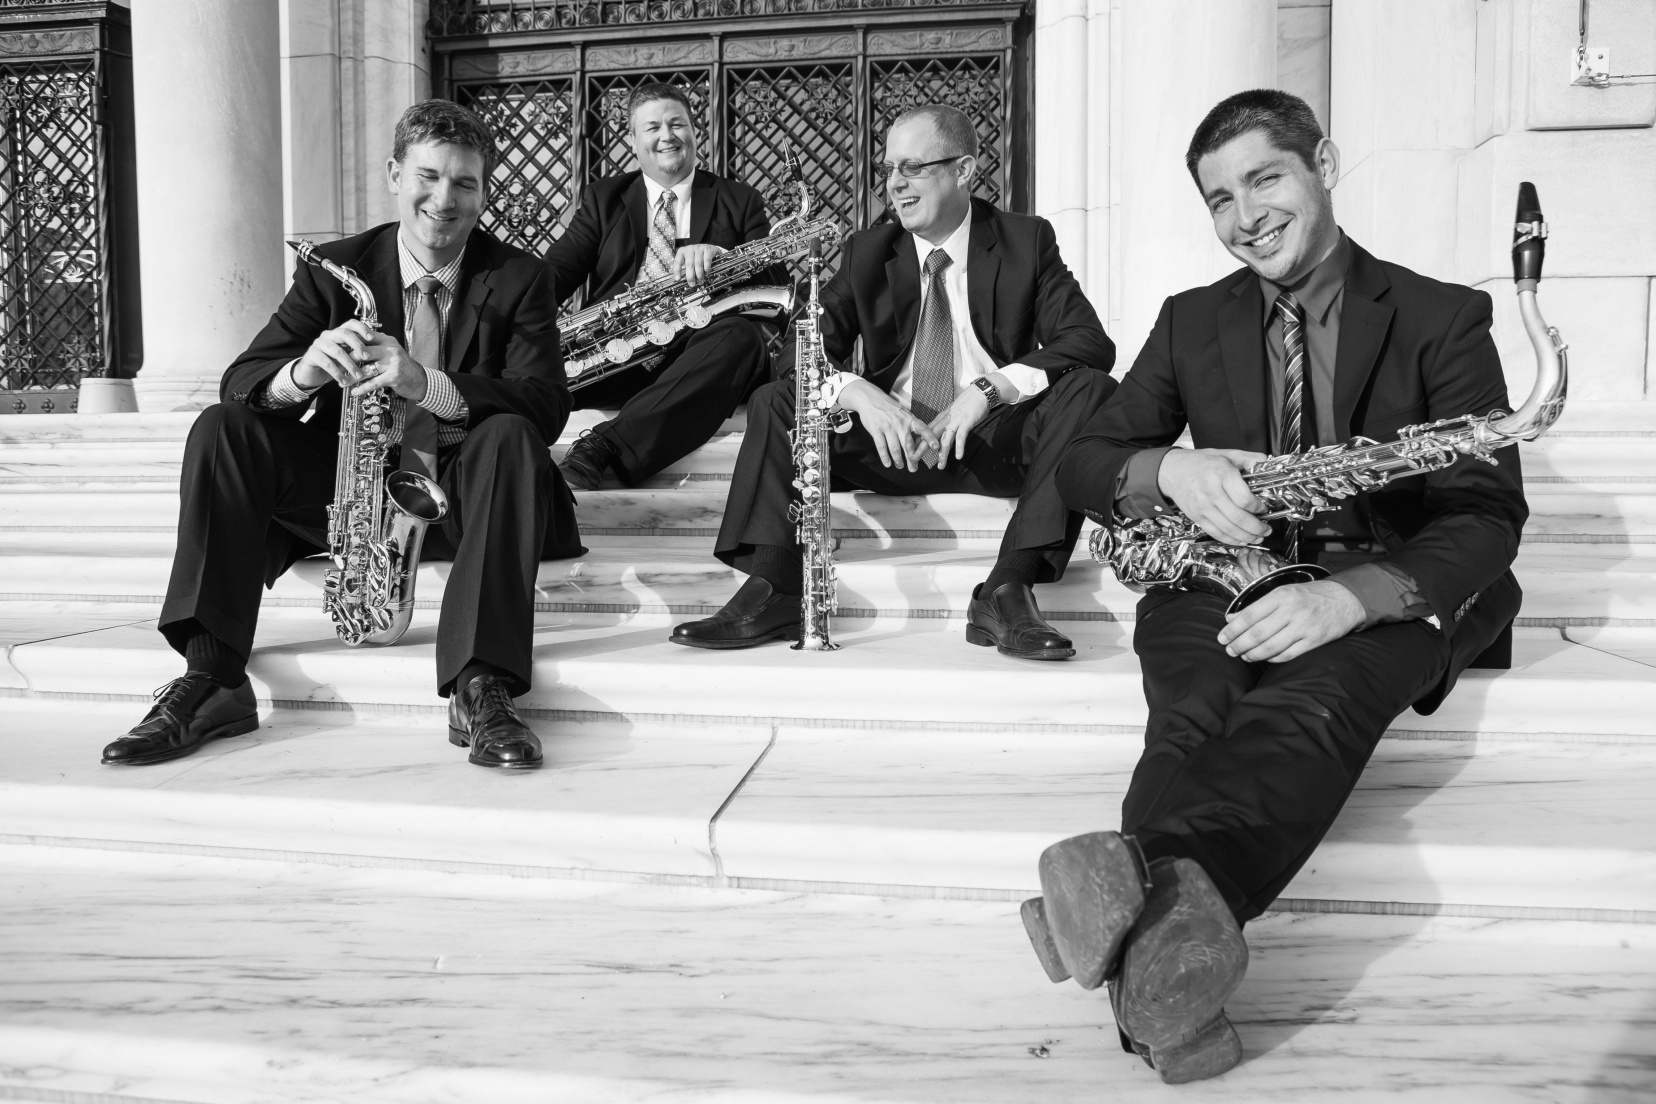 Men sitting on steps with saxophones